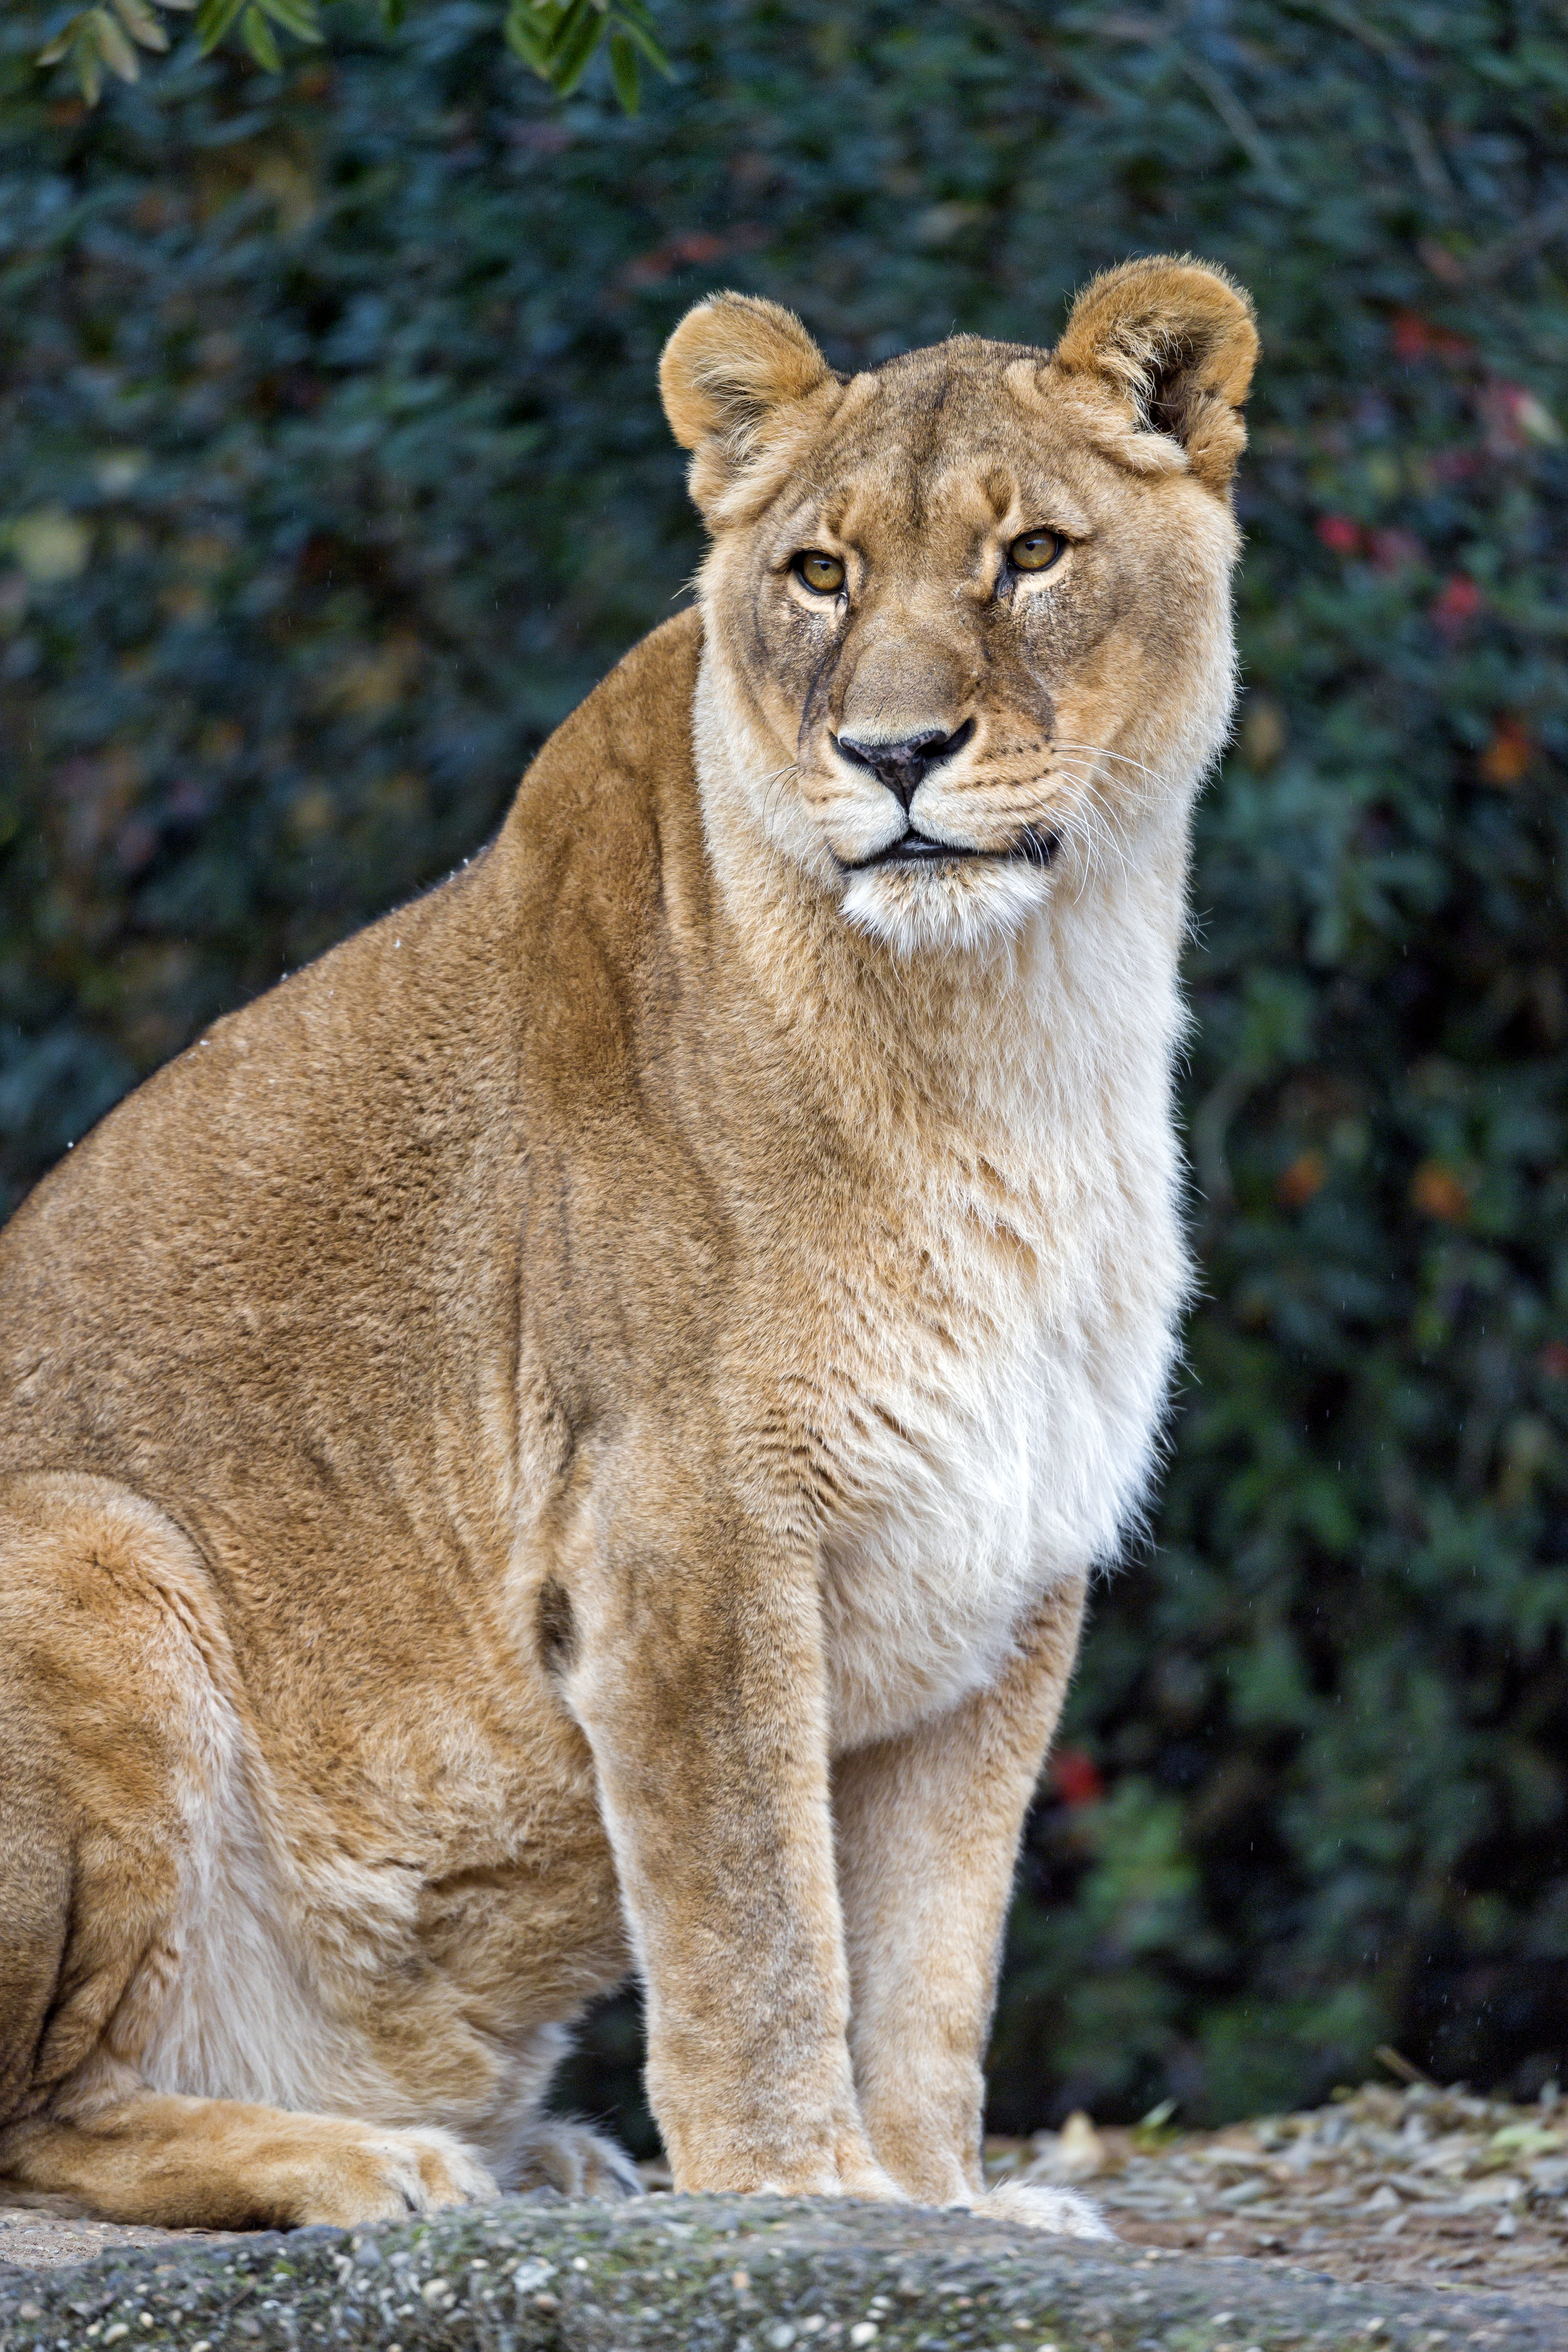 124822 download wallpaper Animals, Lioness, Big Cat, Predator, Animal, Sight, Opinion screensavers and pictures for free